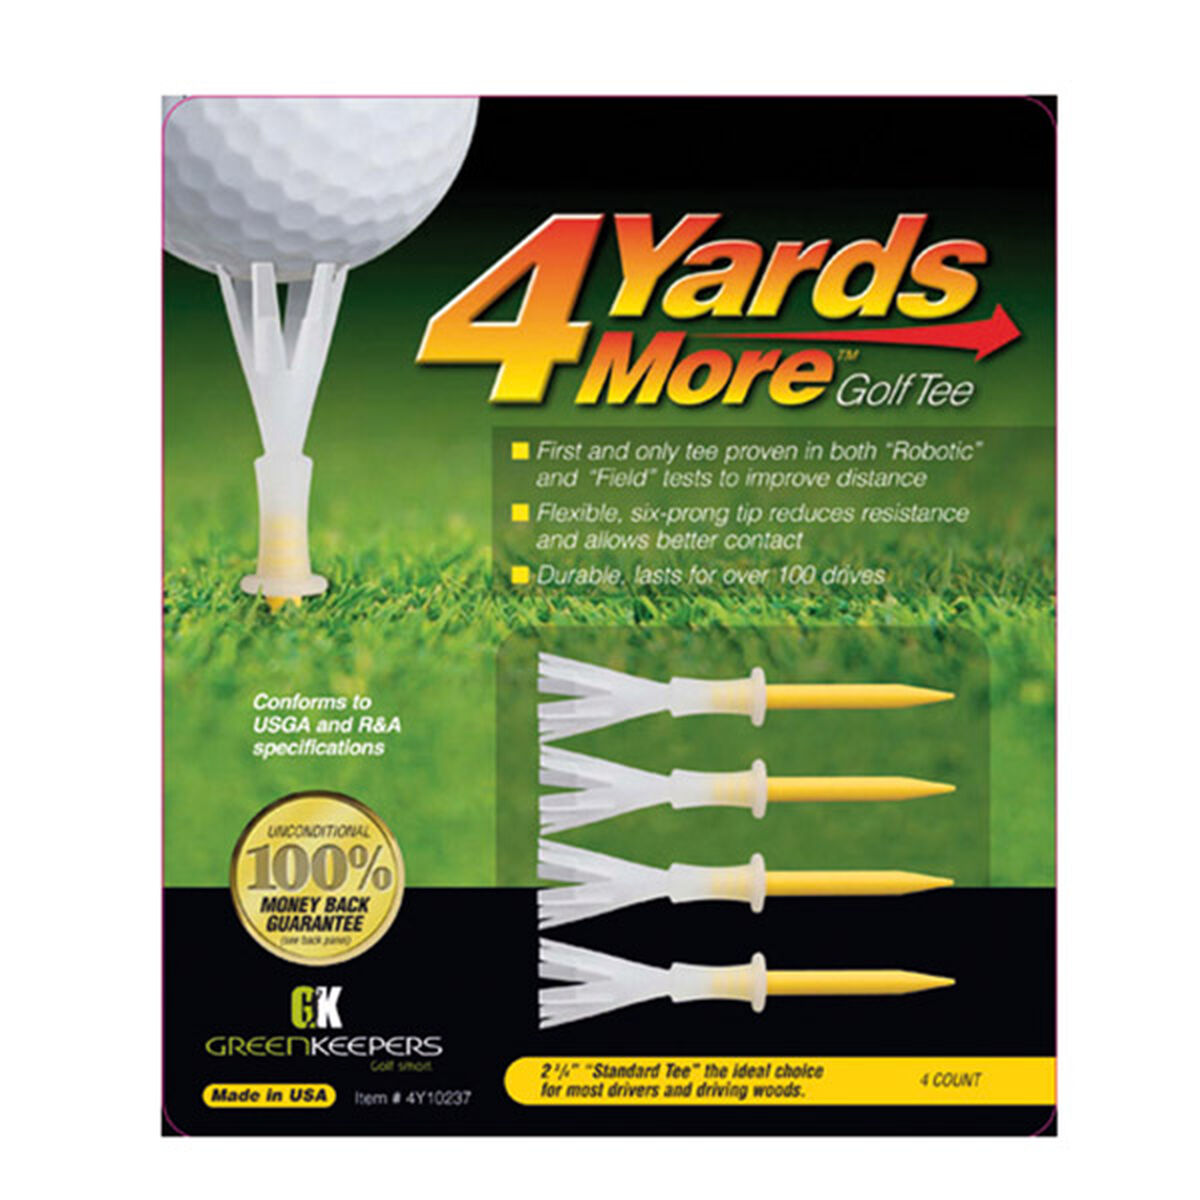 """4 Yards More Yellow Pack of 4 Standard Golf Tees, Size: 2 3/4"""", 2 3/4 inches 